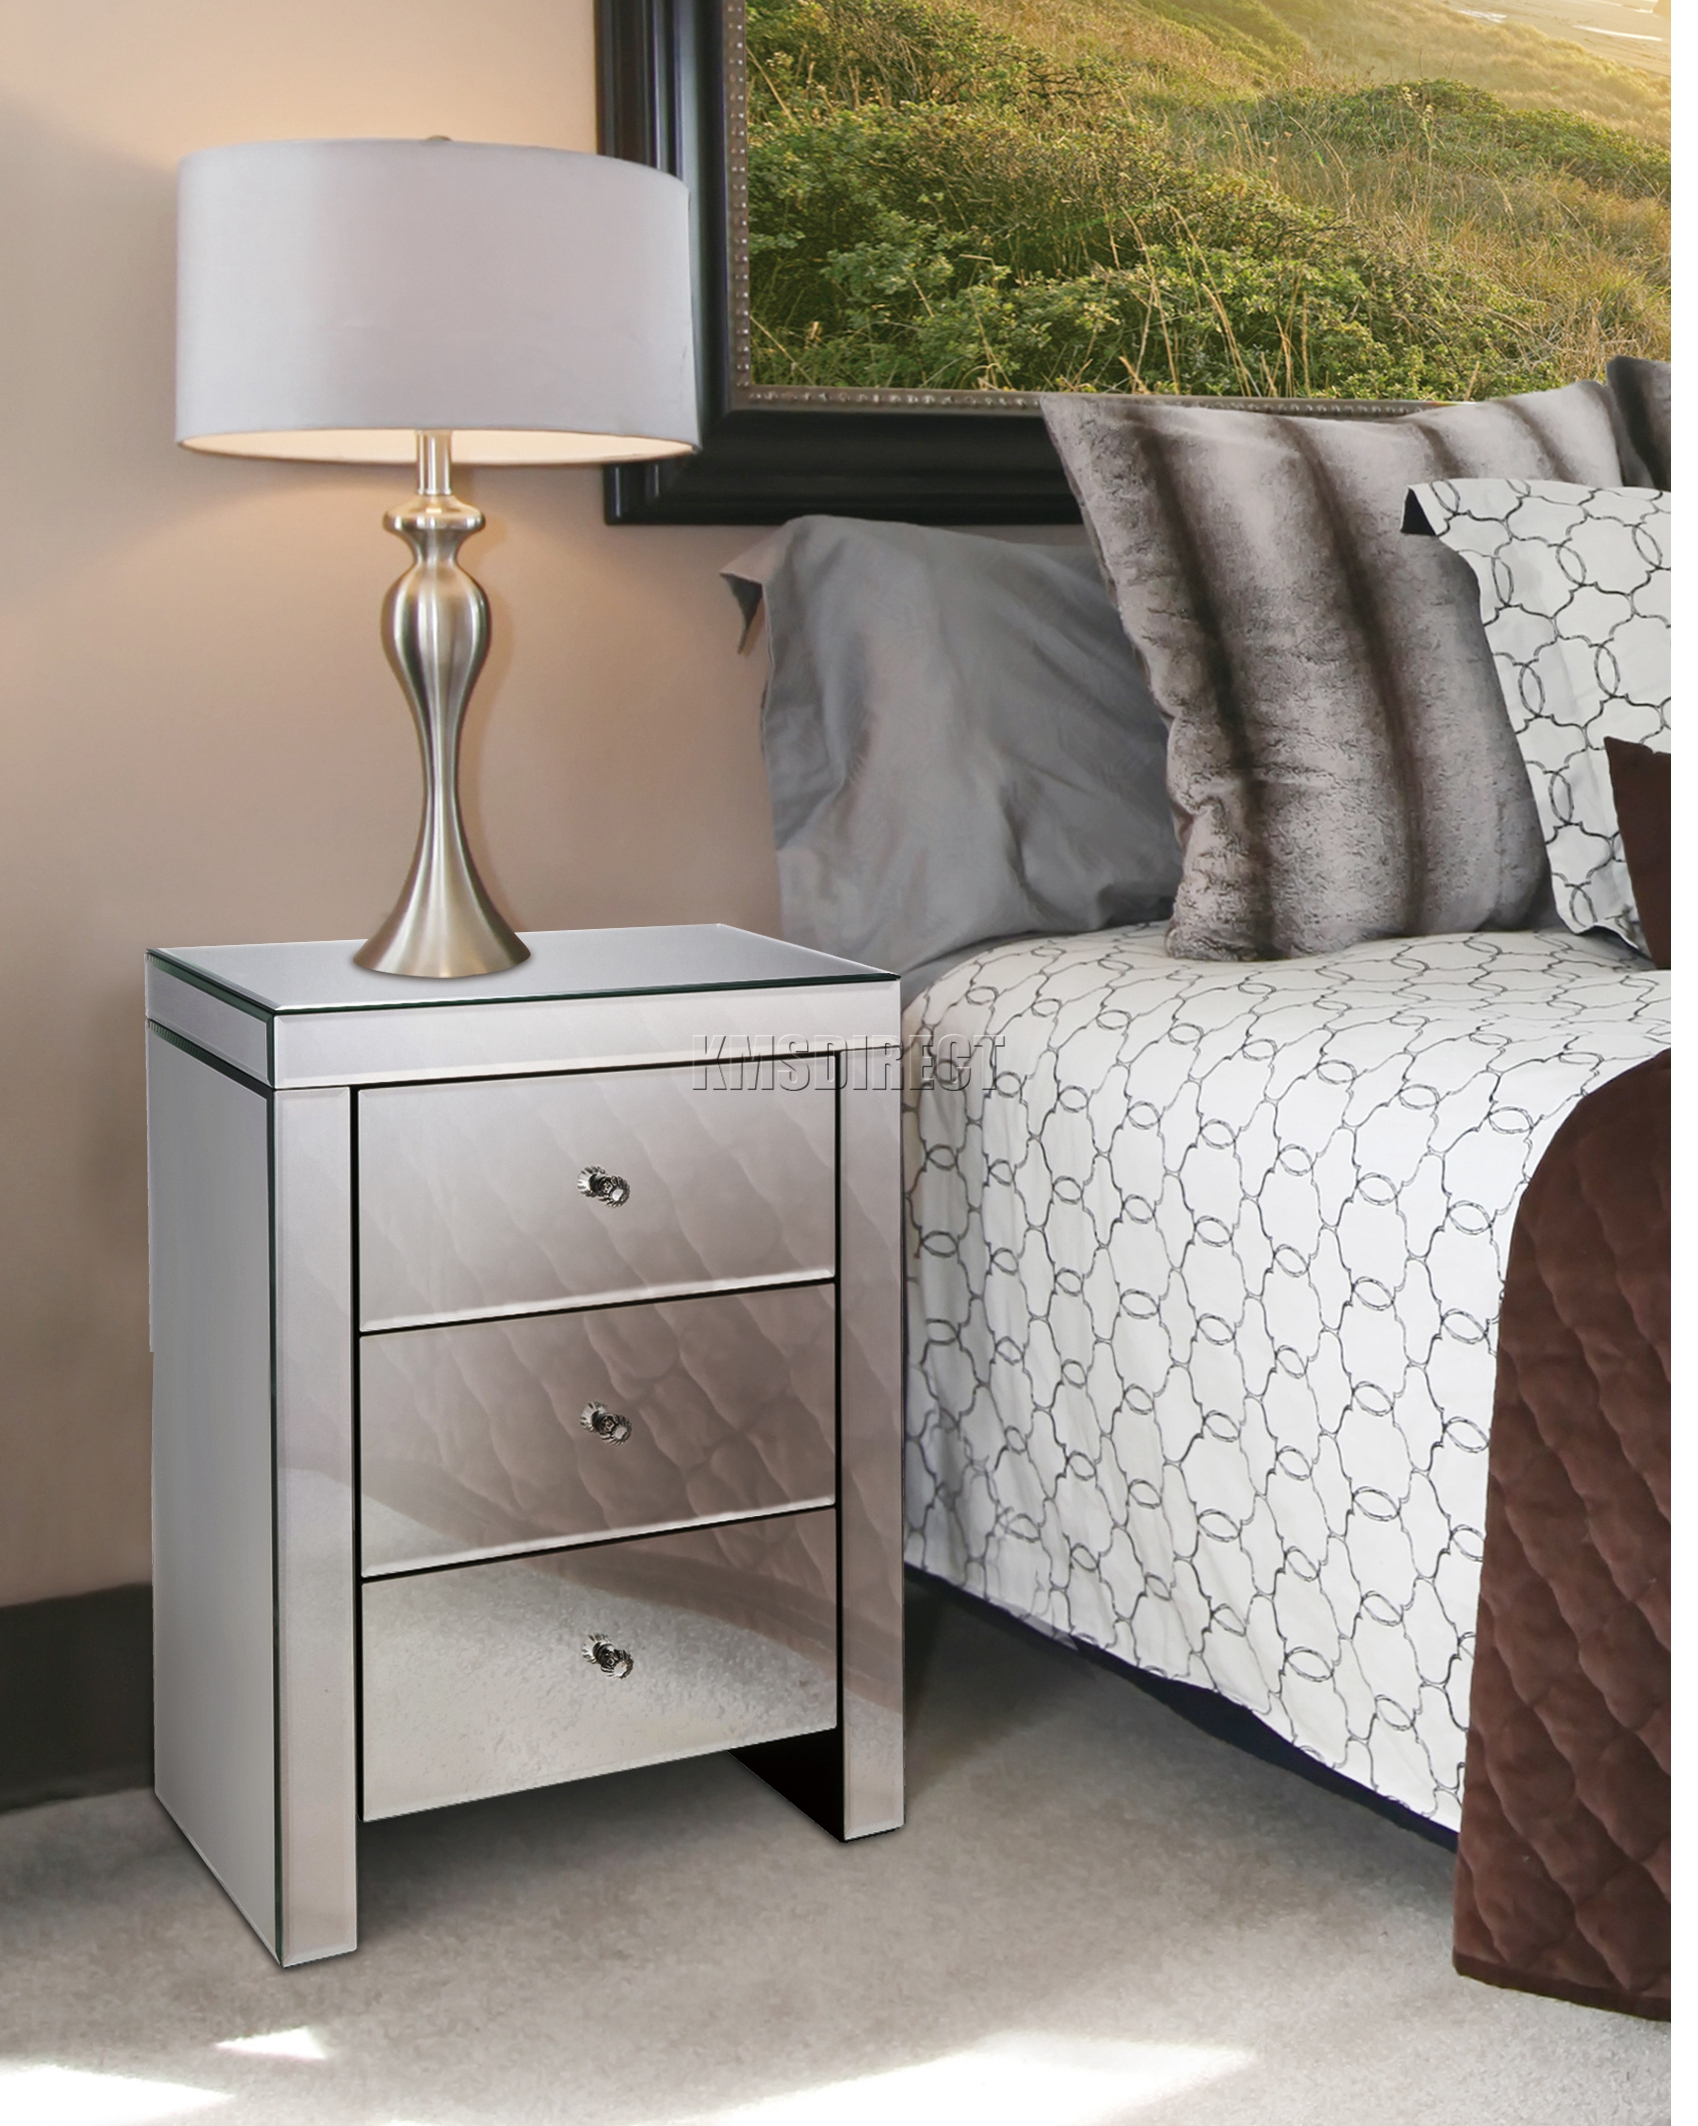 FoxHunter Mirrored Furniture Glass Bedside Cabinet Table